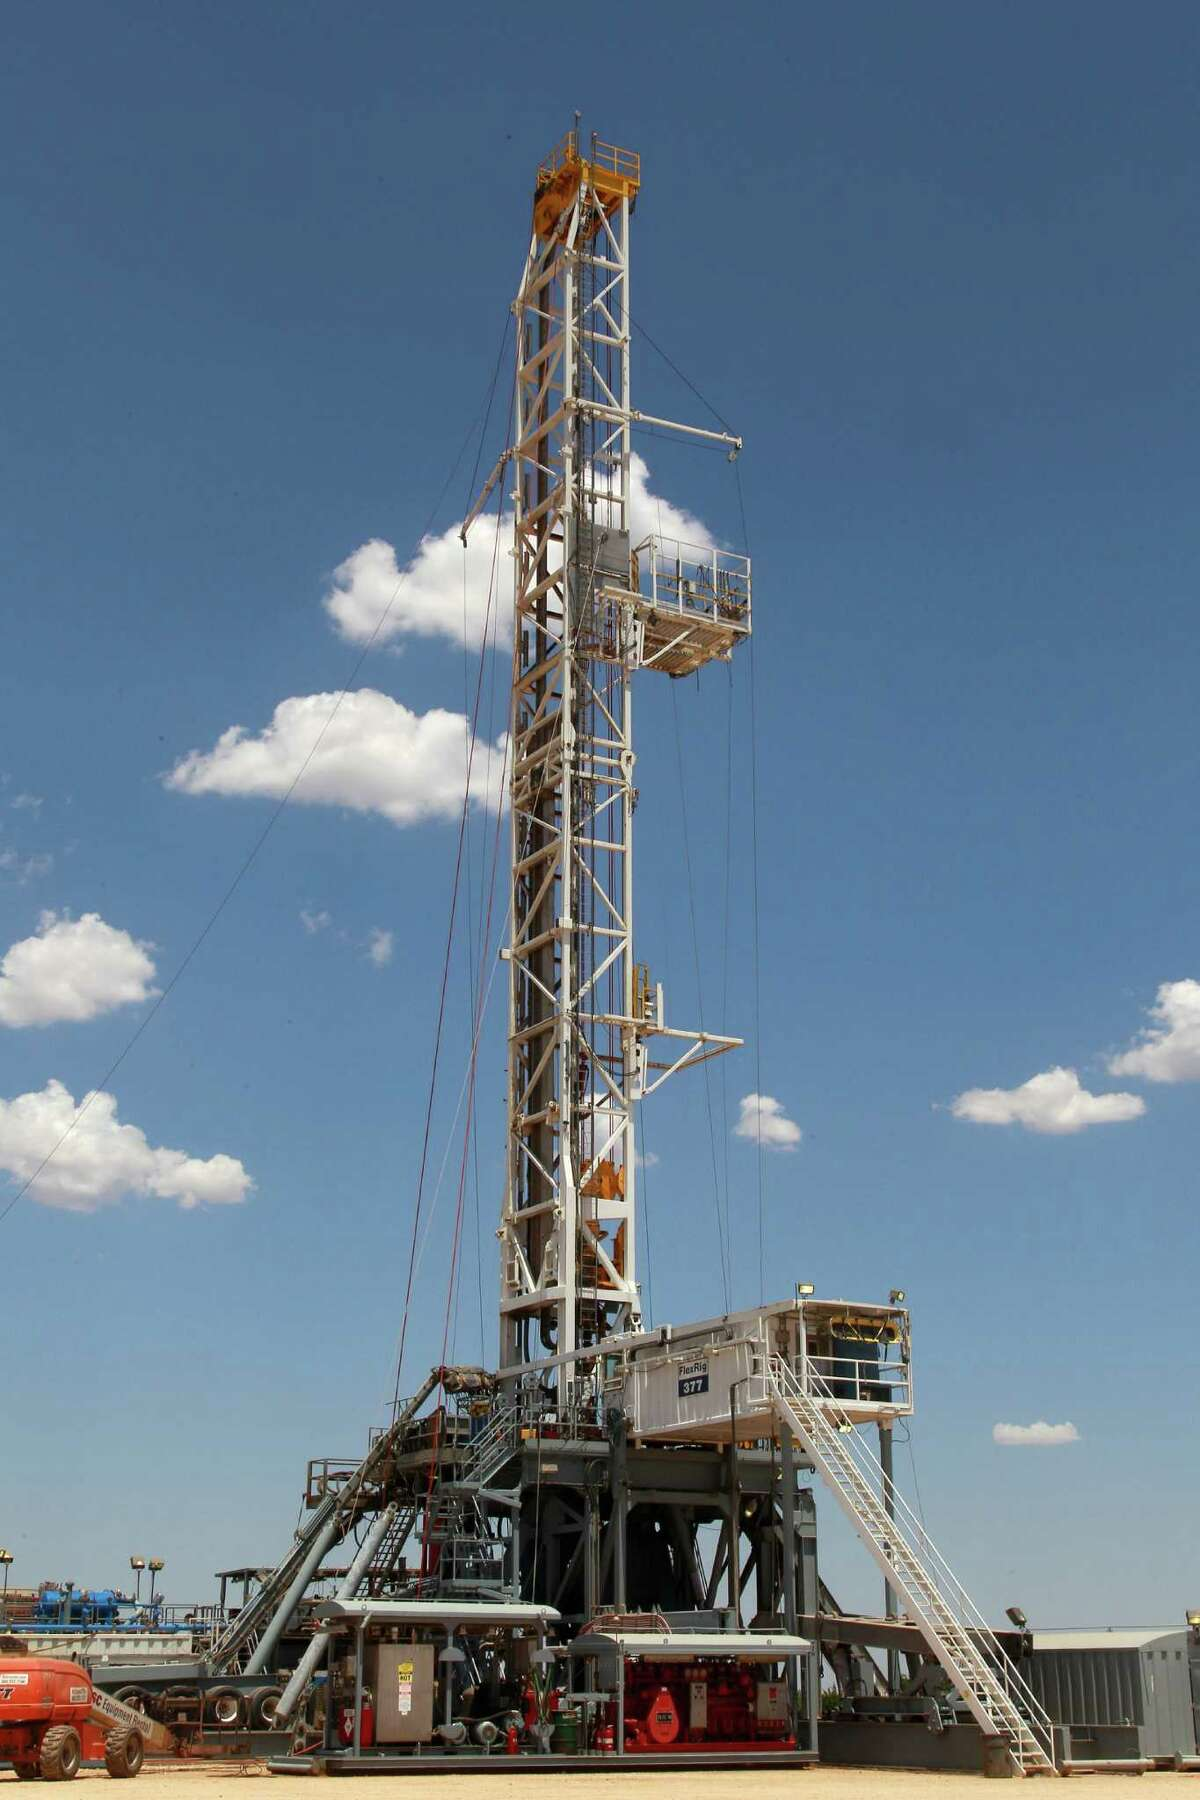 A new study sees a possible link between injection of oil and gas wastewater underground and quakes in Oklahoma. This rig is working near Oklahoma City.